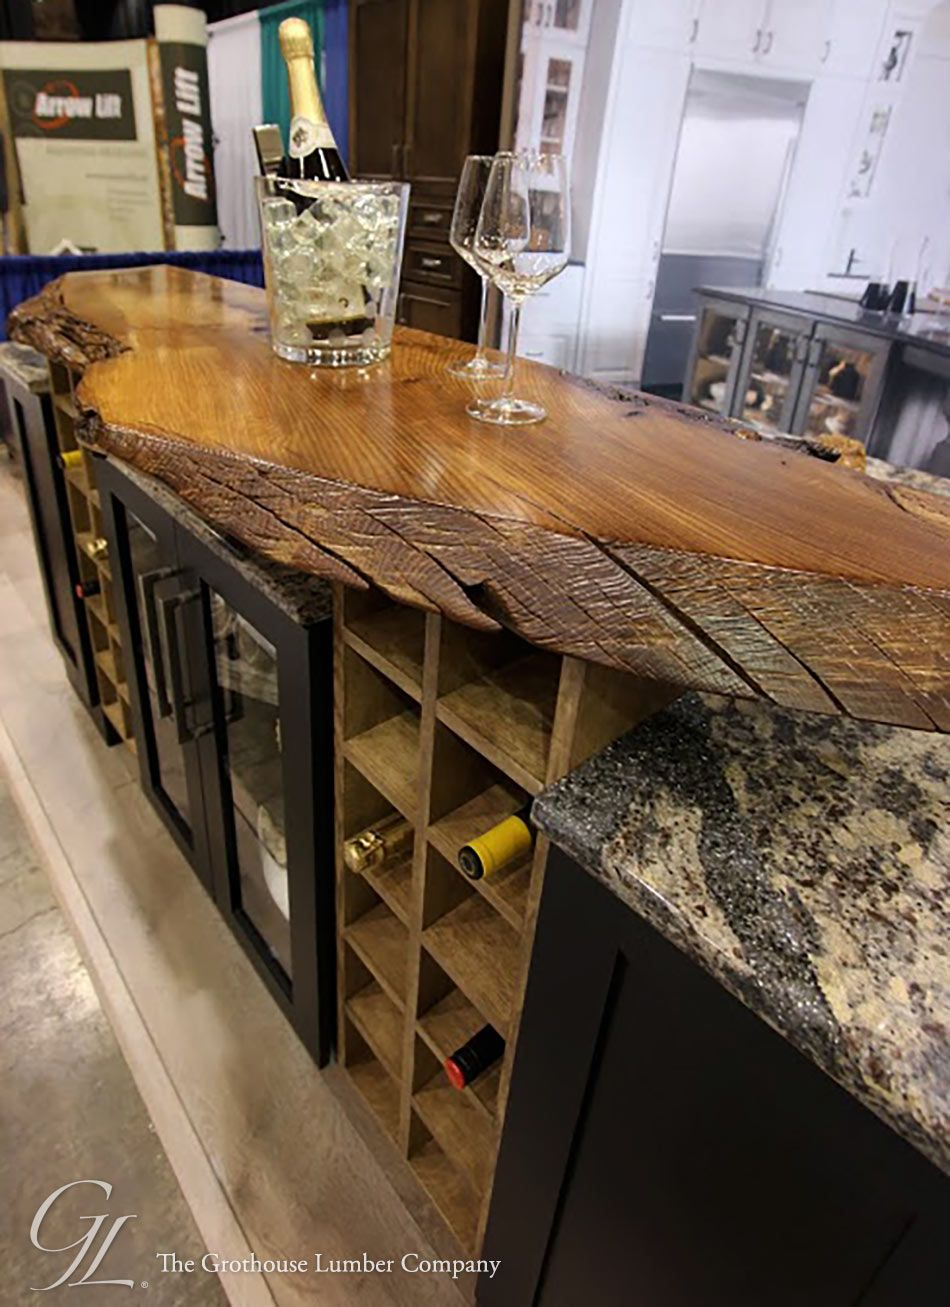 Beau Live Edge Custom English Wych Elm Wood Countertop In Medina, Ohio Designed  For A Display At The Home And Garden Show, Finished With Durata® Waterproof  ...